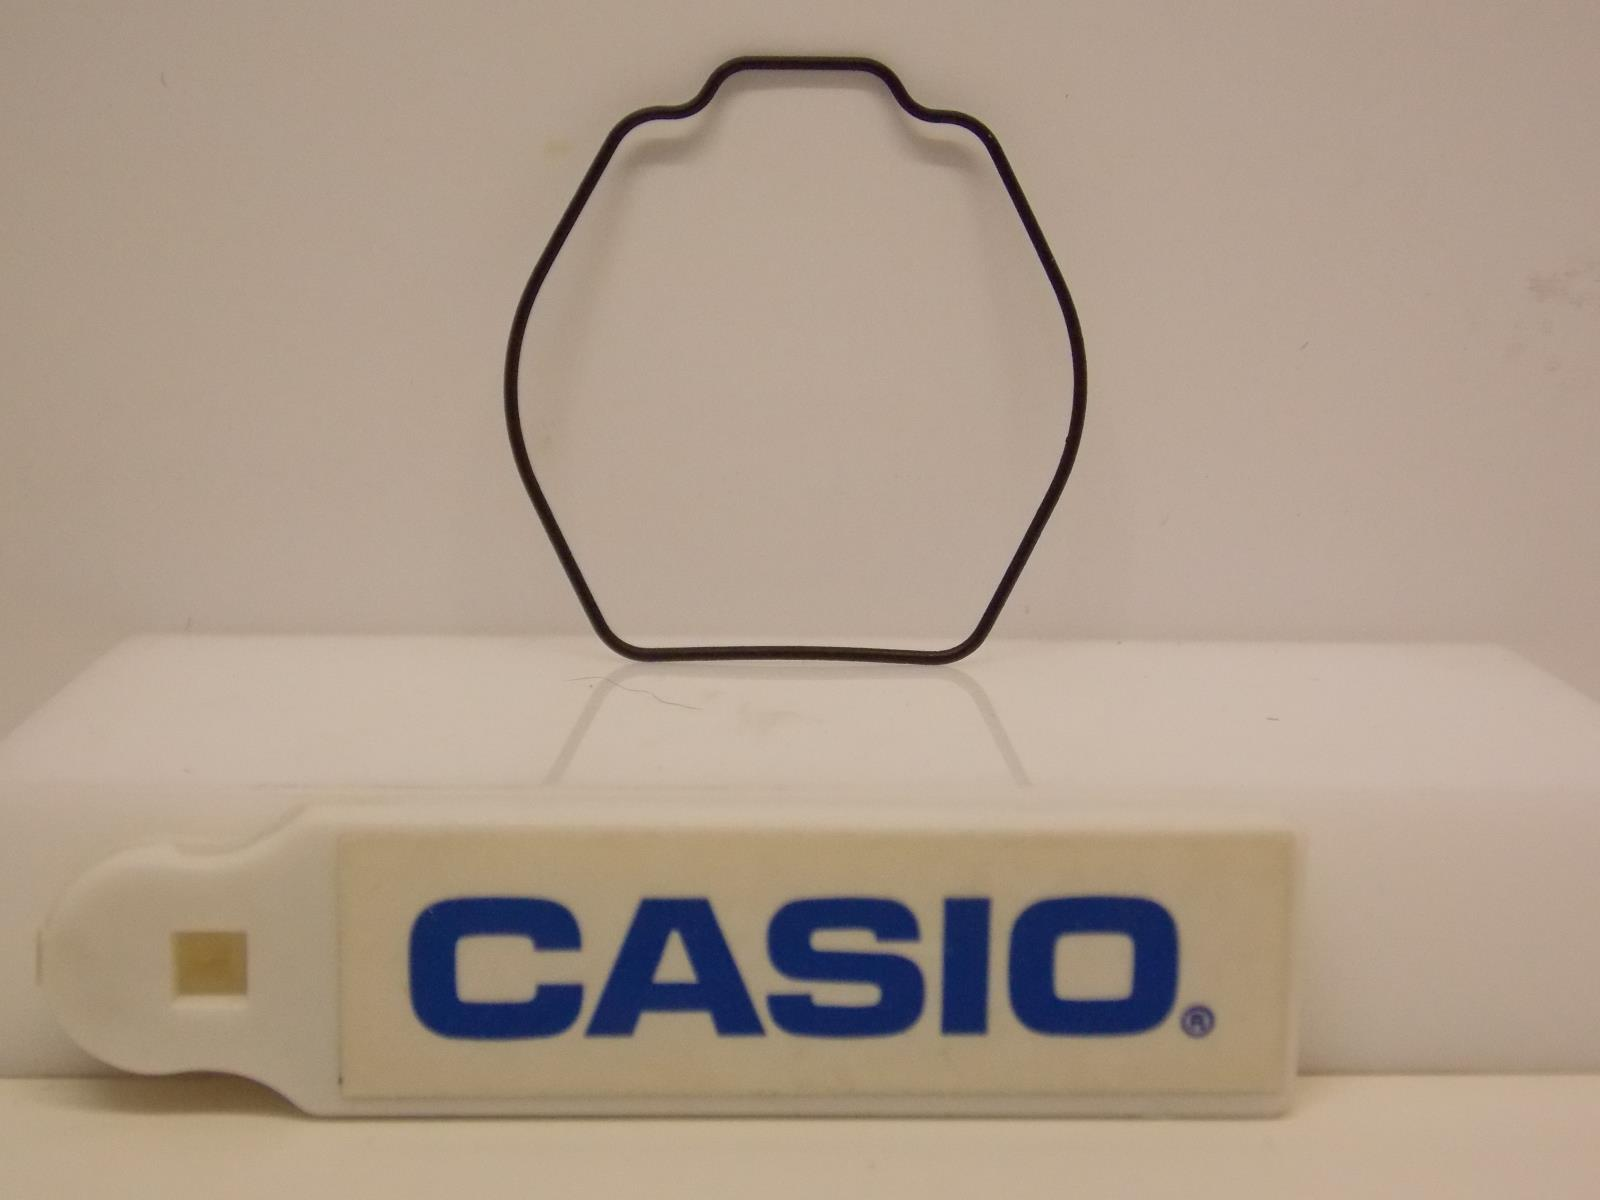 Casio Watch Parts GW-300,MTG-900 Back Plate Gasket See description for all model